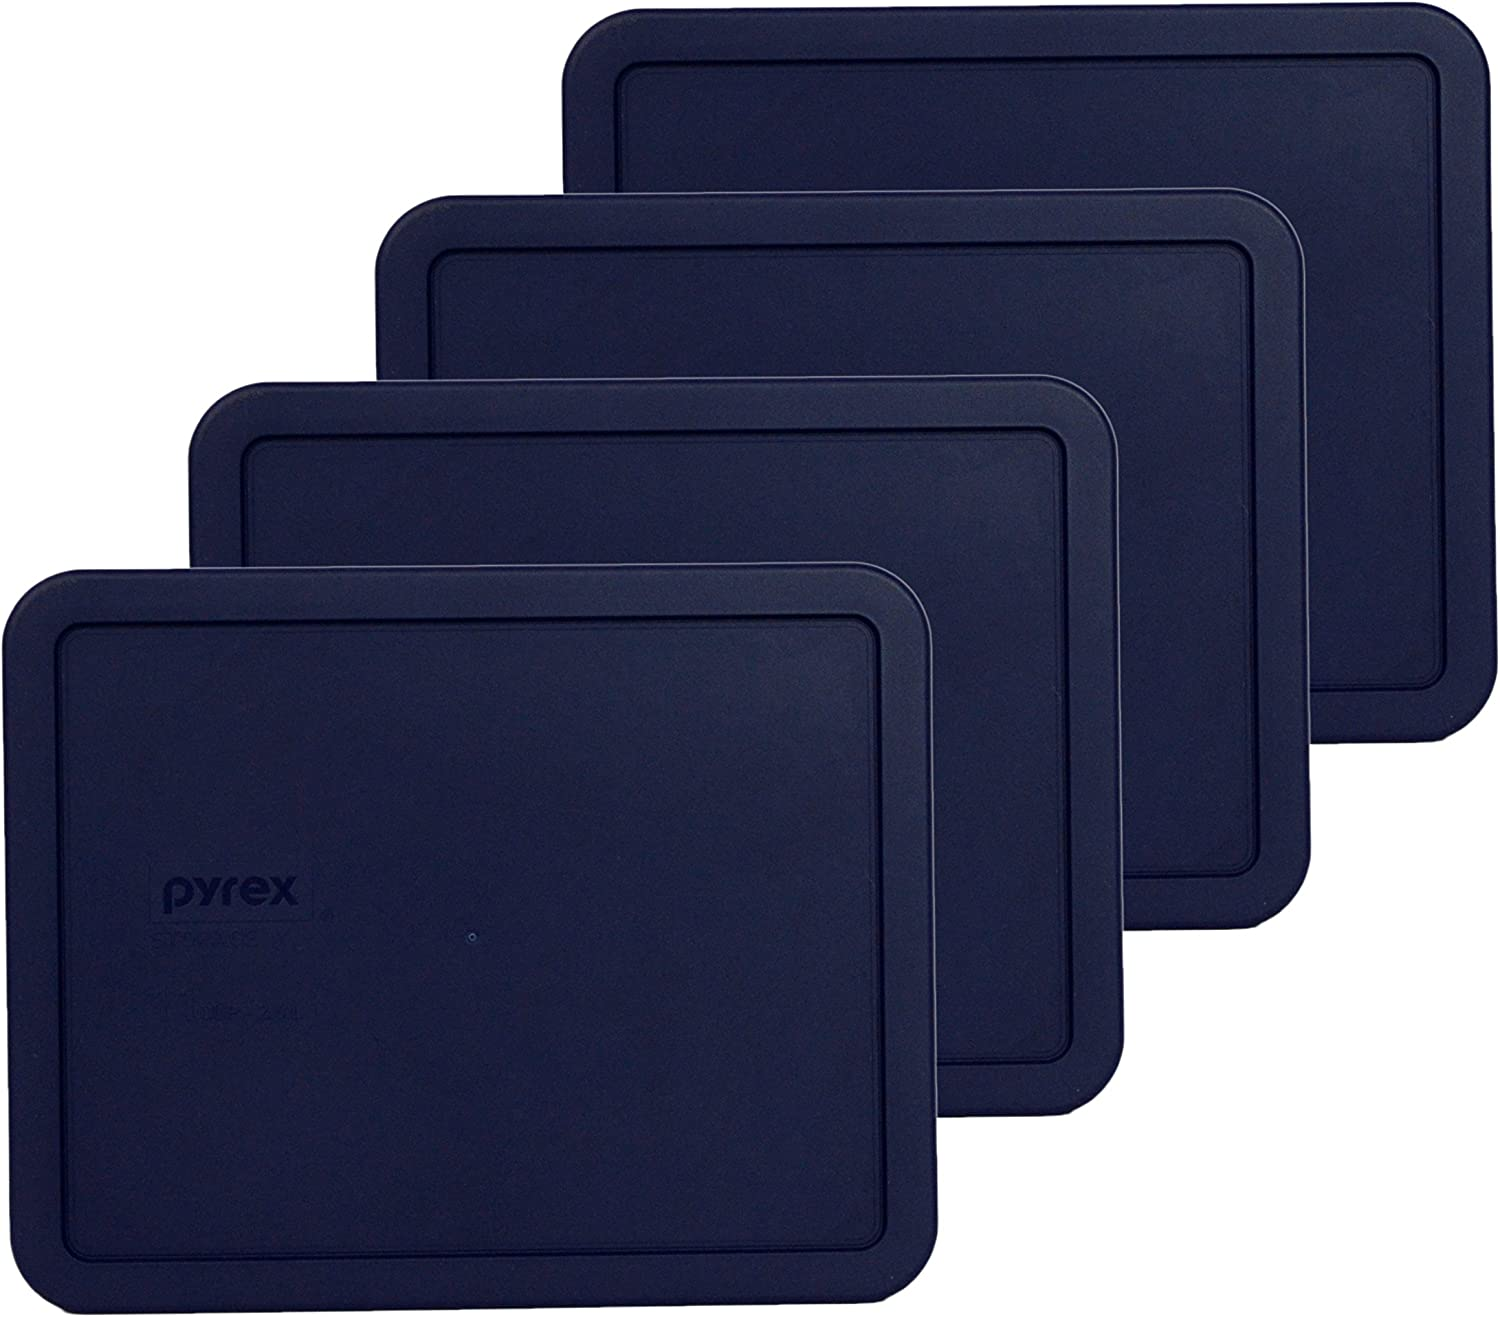 Pyrex 7212-PC 11 Cup Dark Blue Rectangle - Food Finally New life popular brand Lid 4 Storage Pa